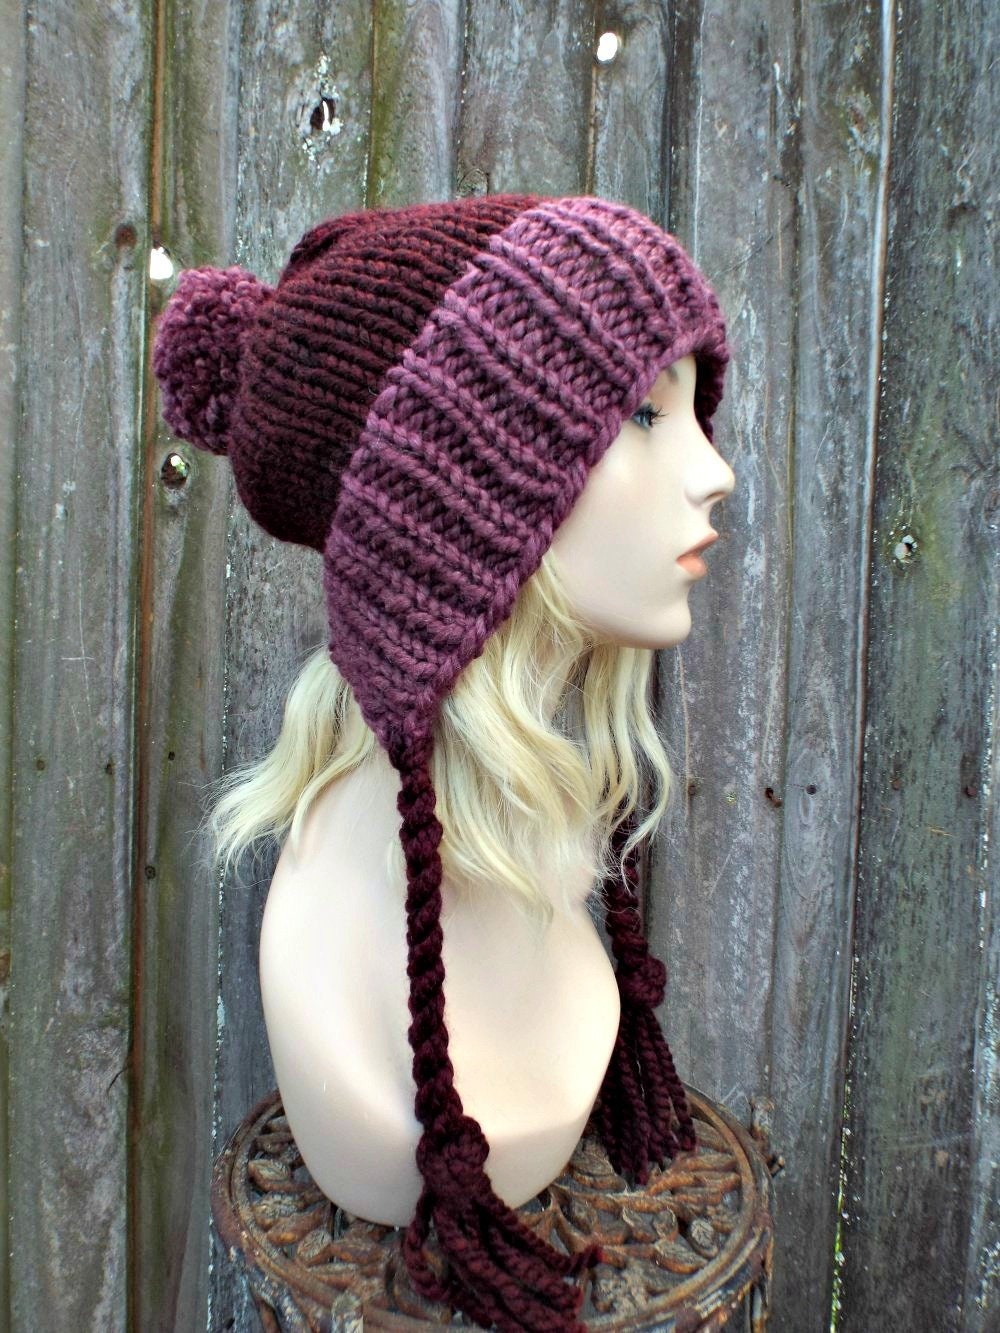 21556f2d845 Chunky Knit Hat Womens Wine and Purple Pom Pom Hat - Slouchy Ear Flap Beanie  Braided Ties Warm Winter Hat - Charlotte